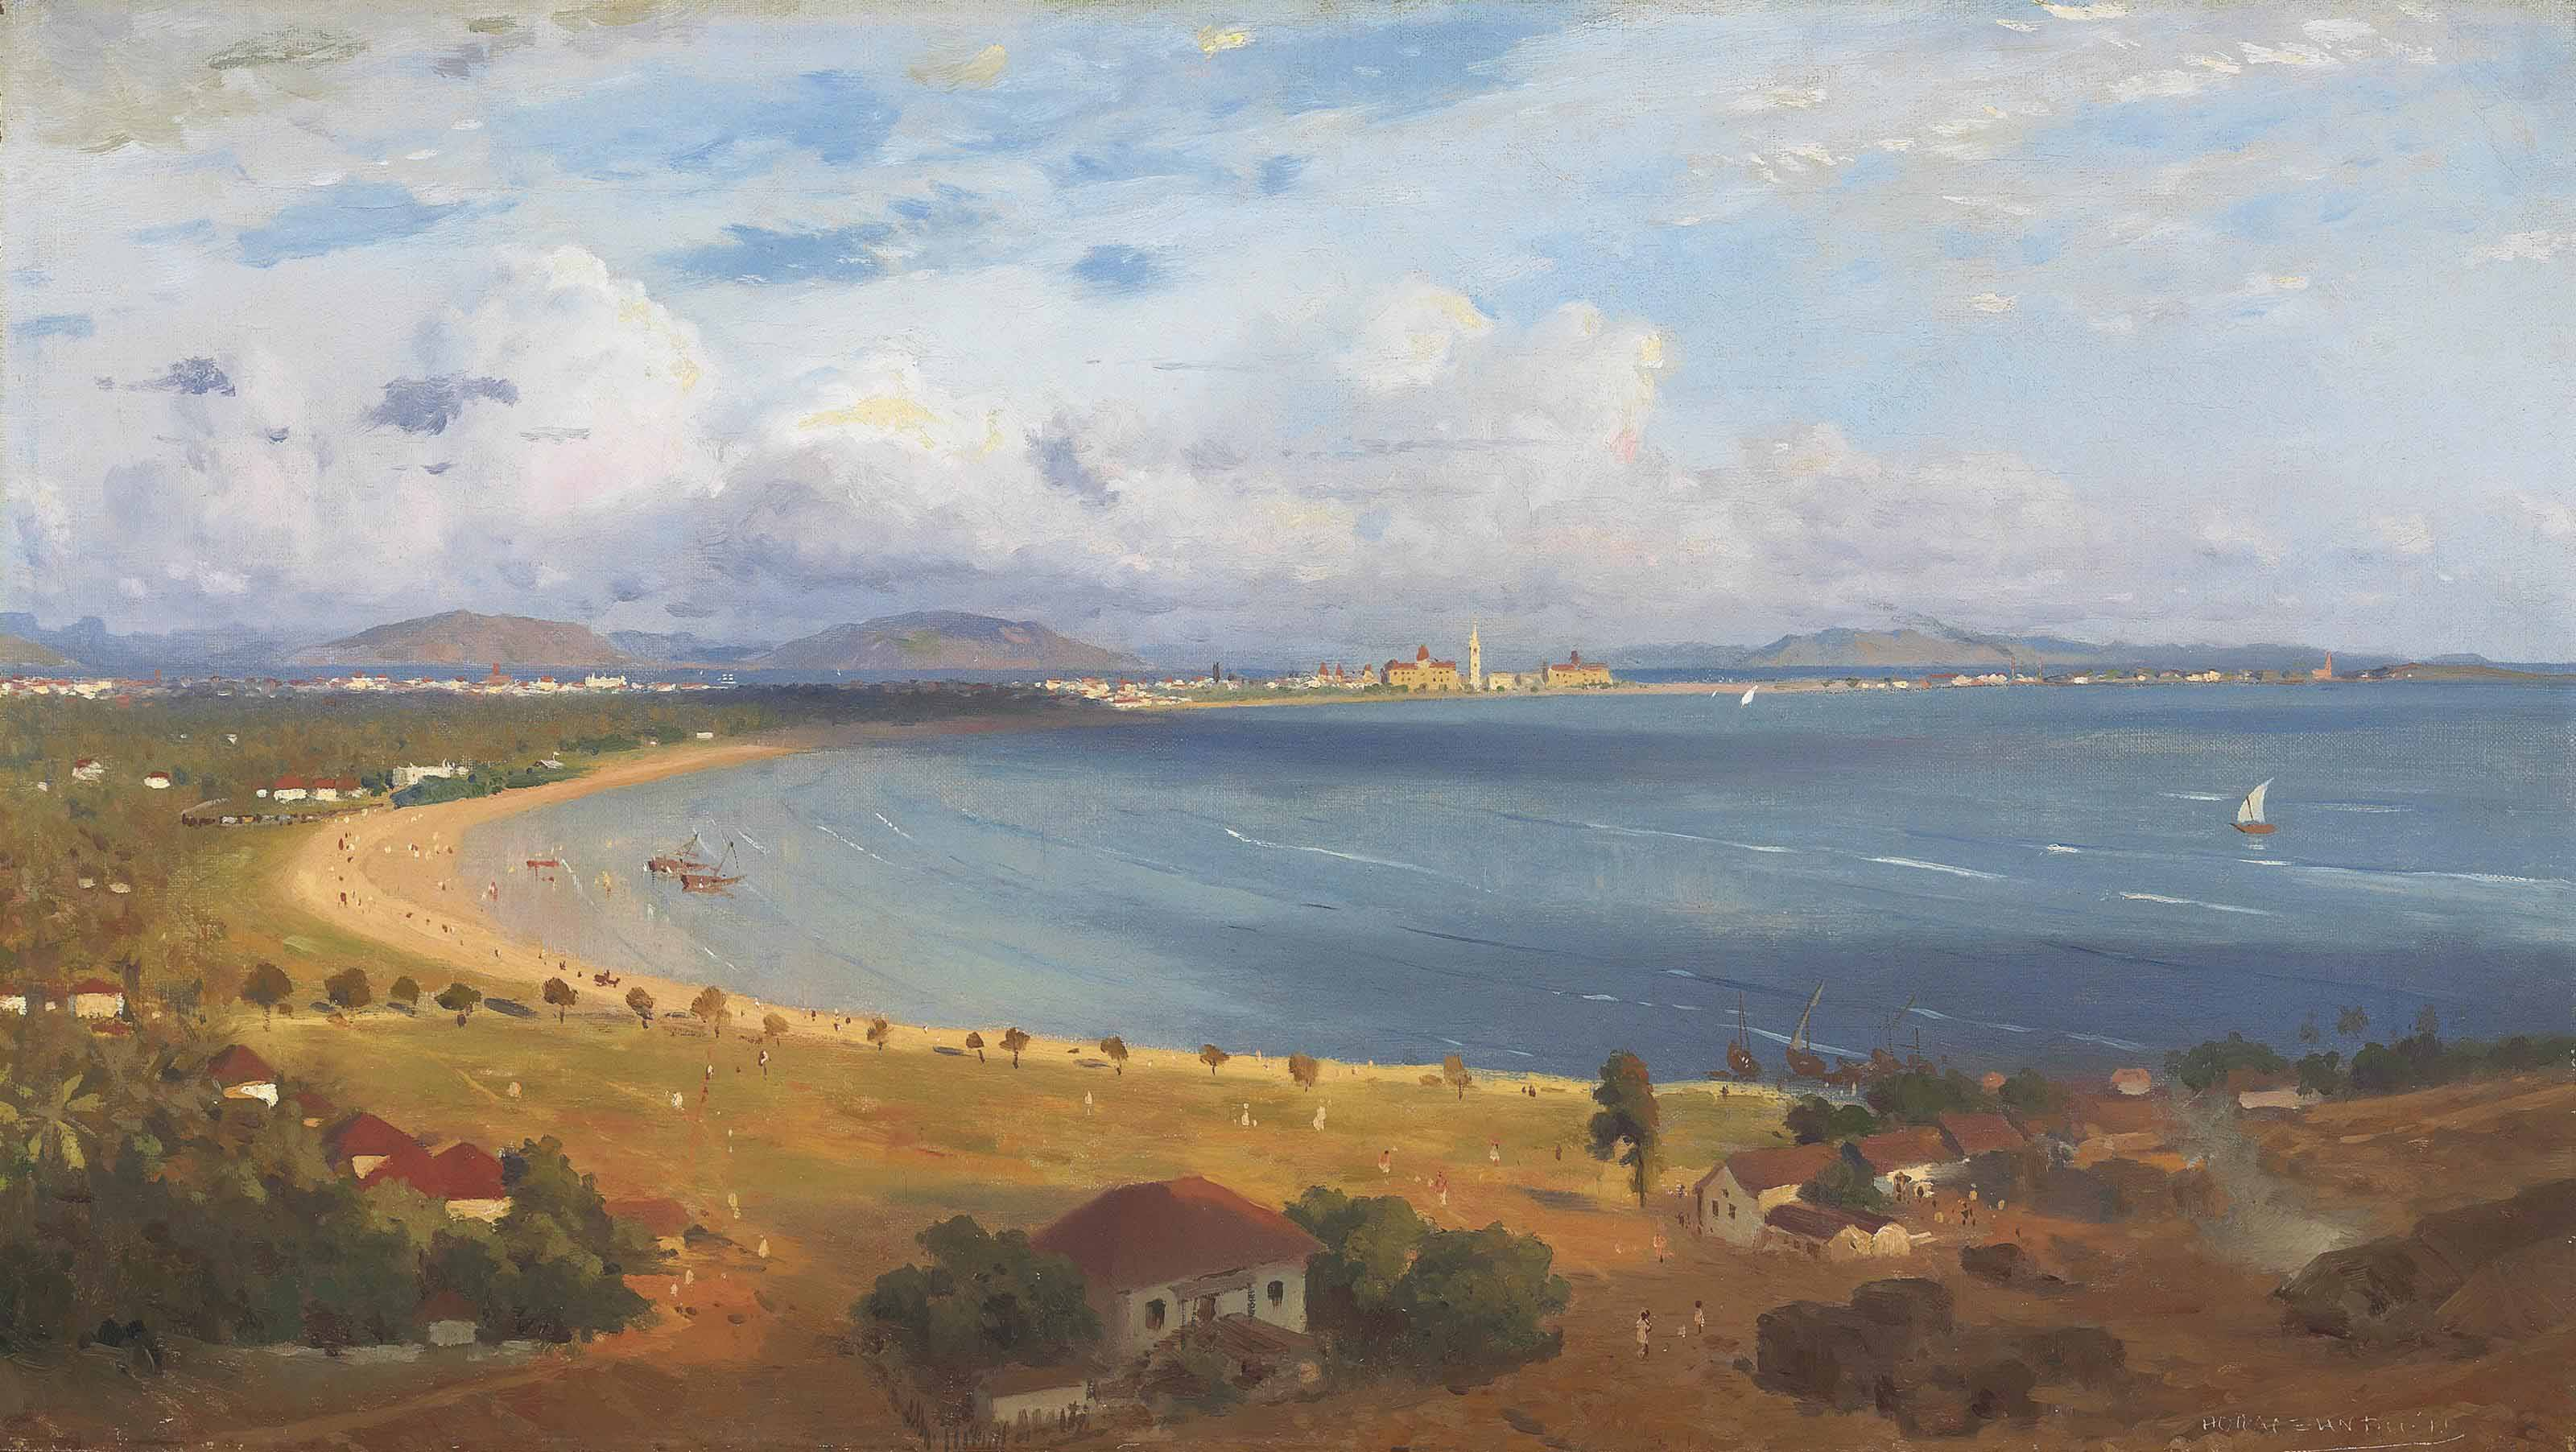 The Back Bay at Bombay, from Malabar Hill